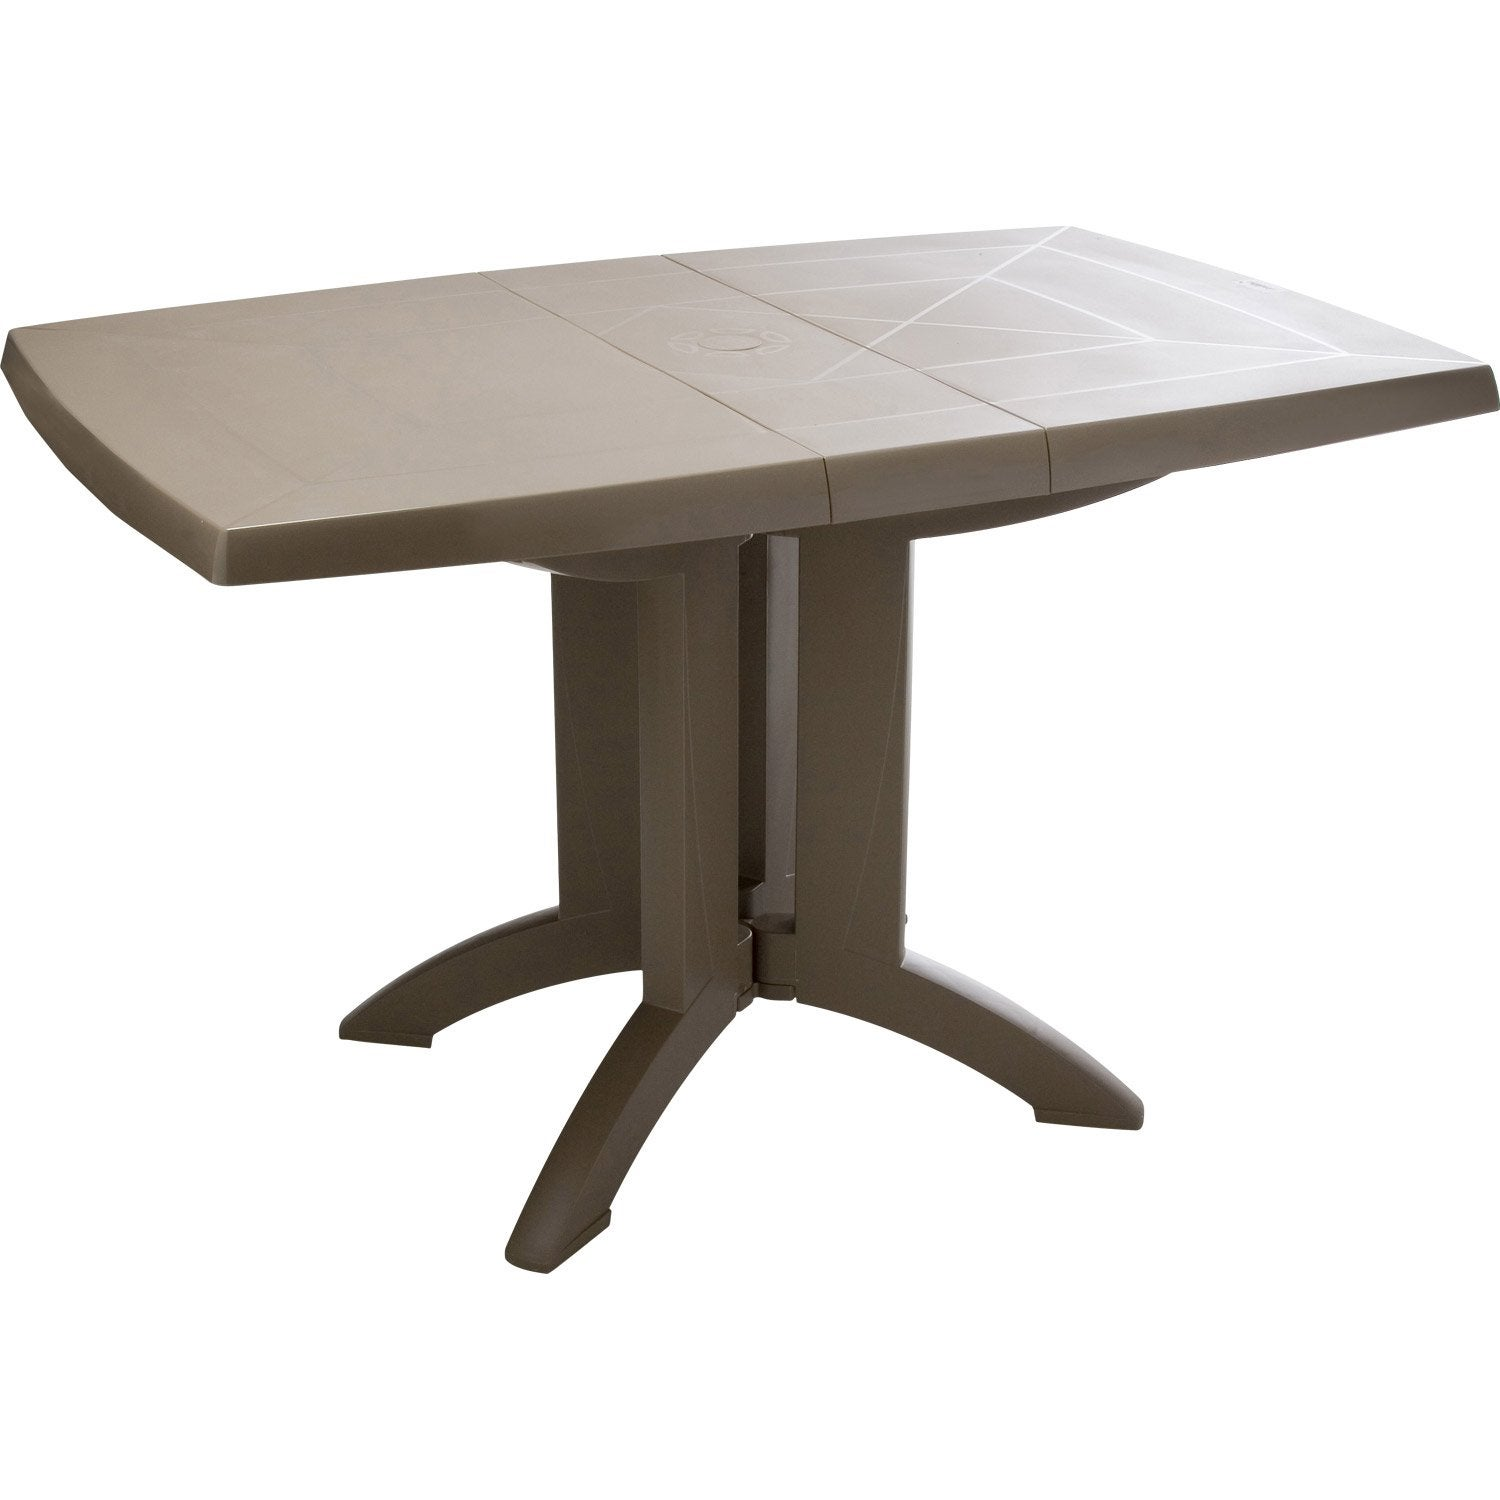 table de jardin grosfillex v ga rectangulaire taupe 4 personnes leroy merlin. Black Bedroom Furniture Sets. Home Design Ideas